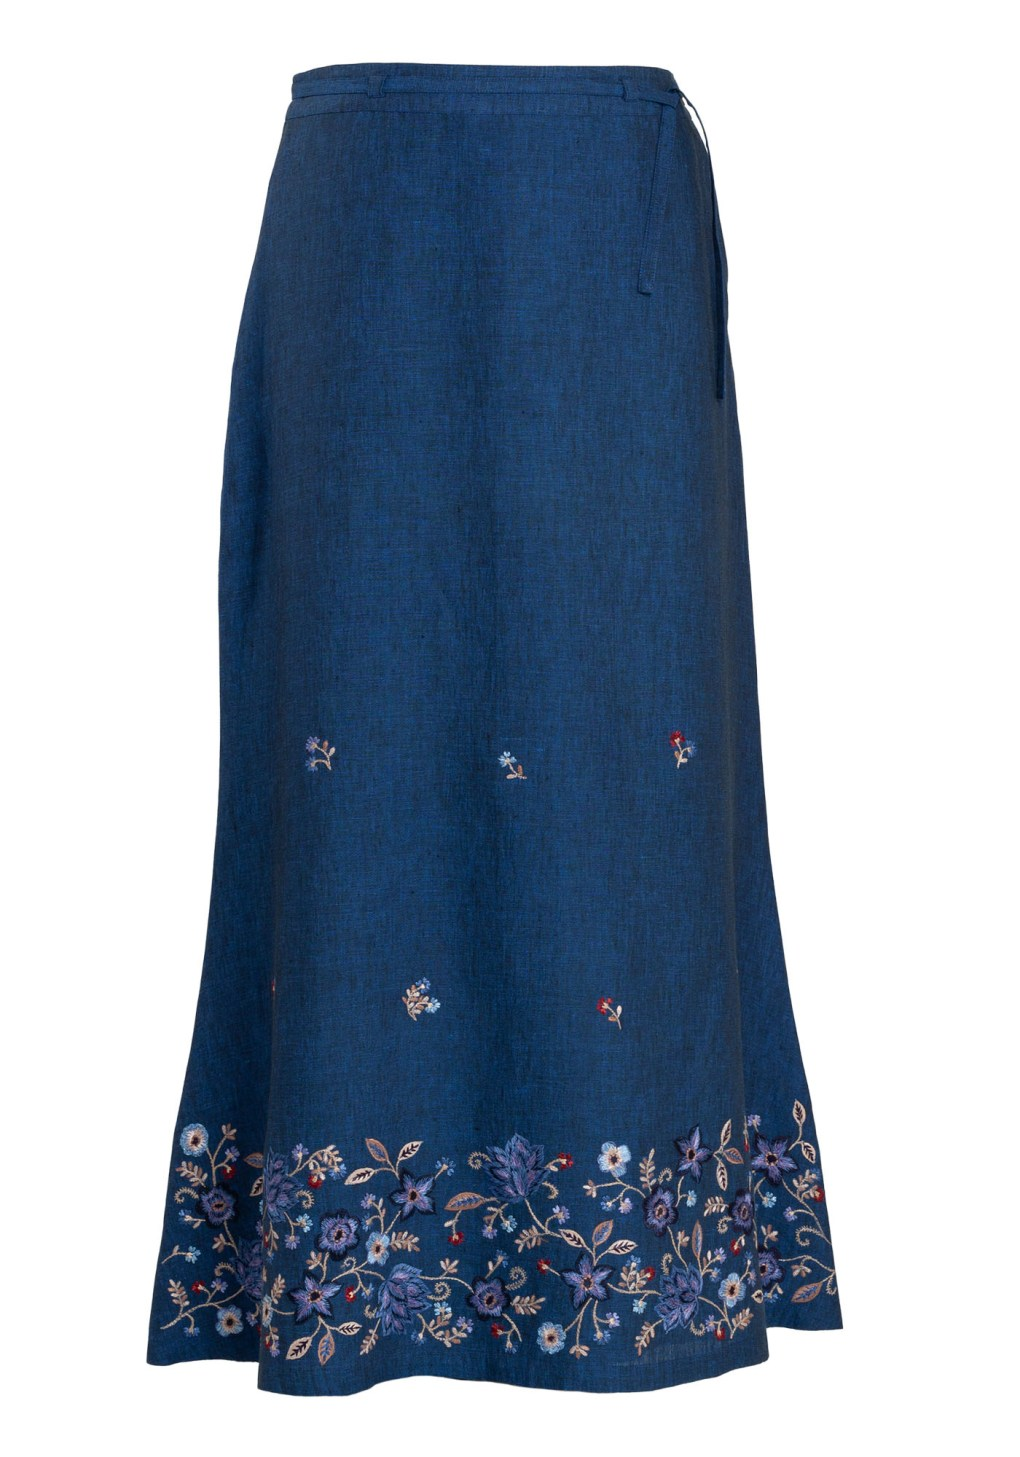 MINC ecofashion Ankle Length Embroidered Skirt in Blue Linen